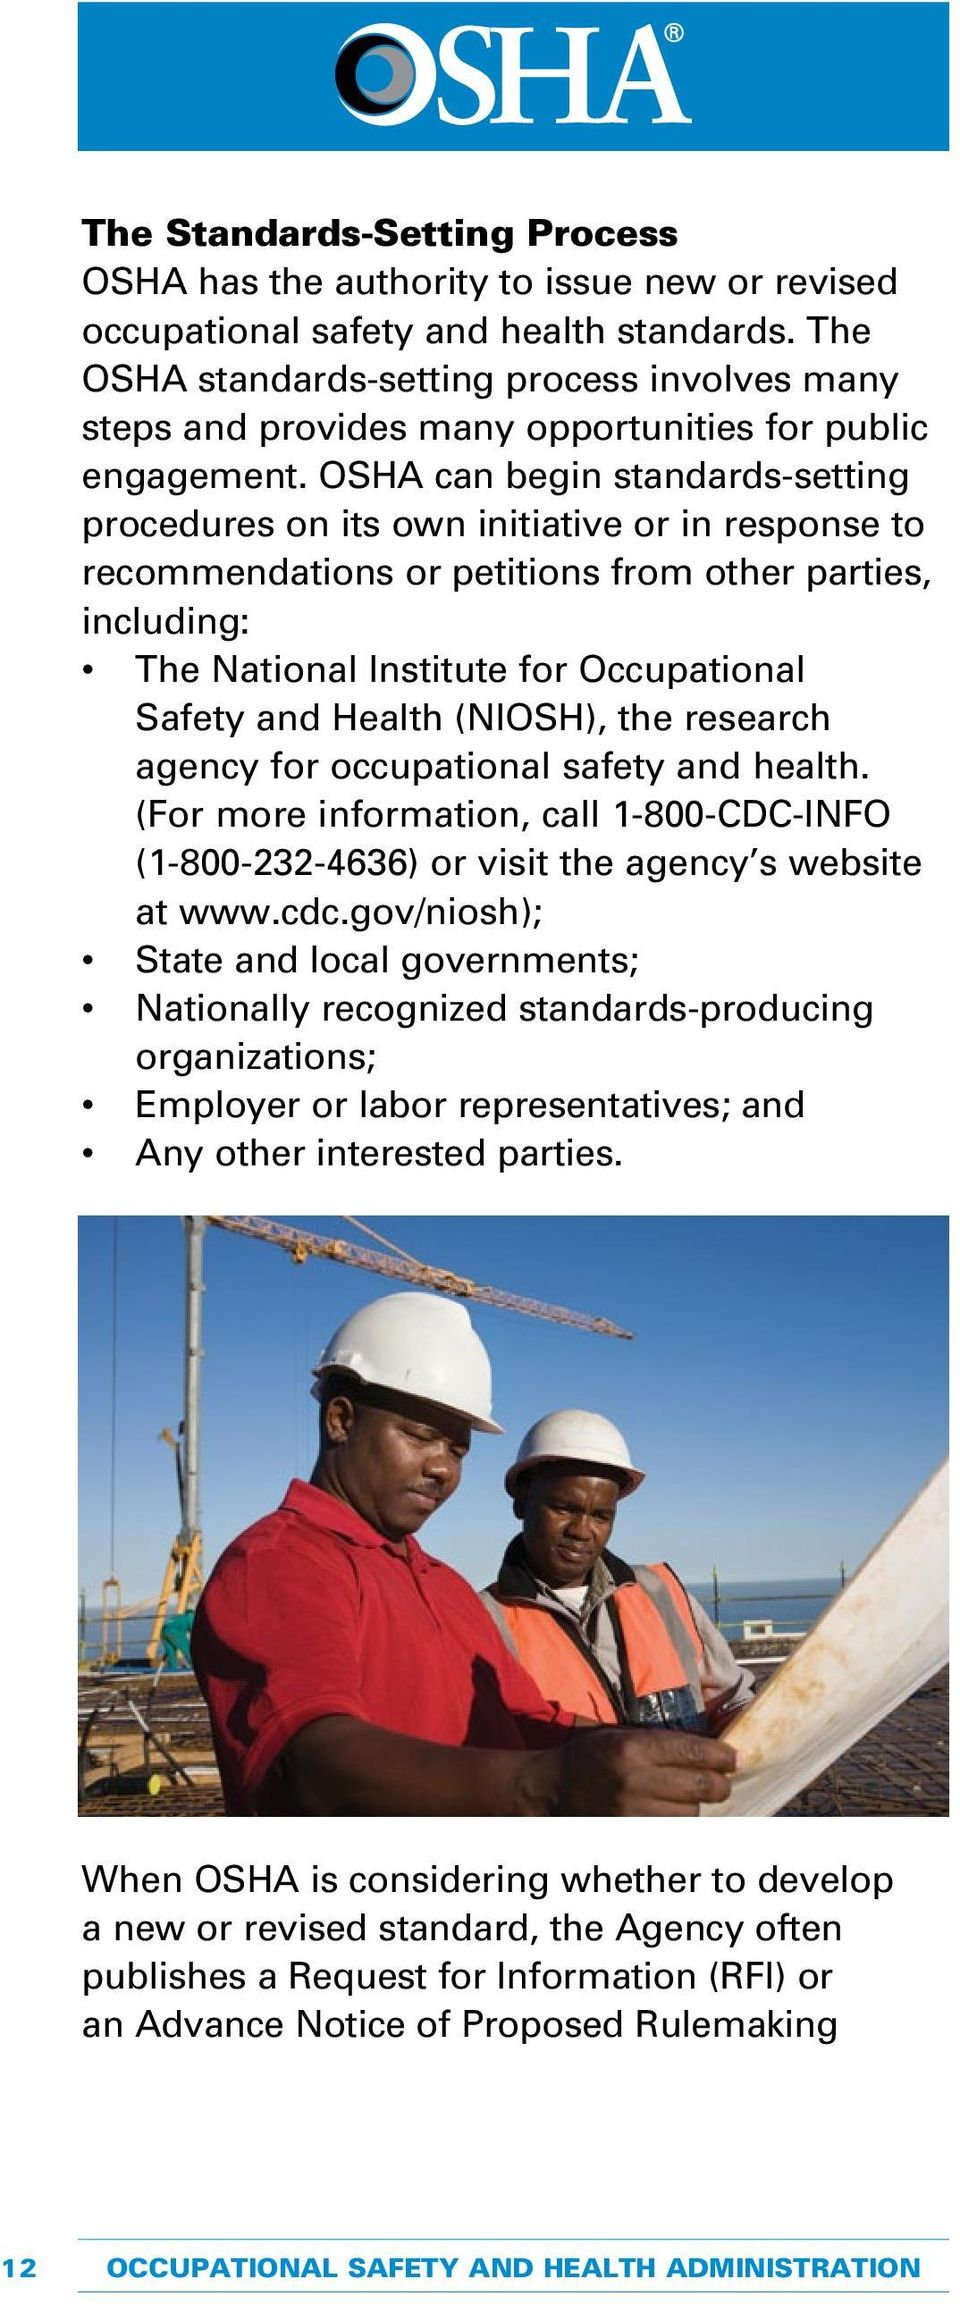 OSHA can begin standards-setting procedures on its own initiative or in response to recommendations or petitions from other parties, including: The National Institute for Occupational Safety and